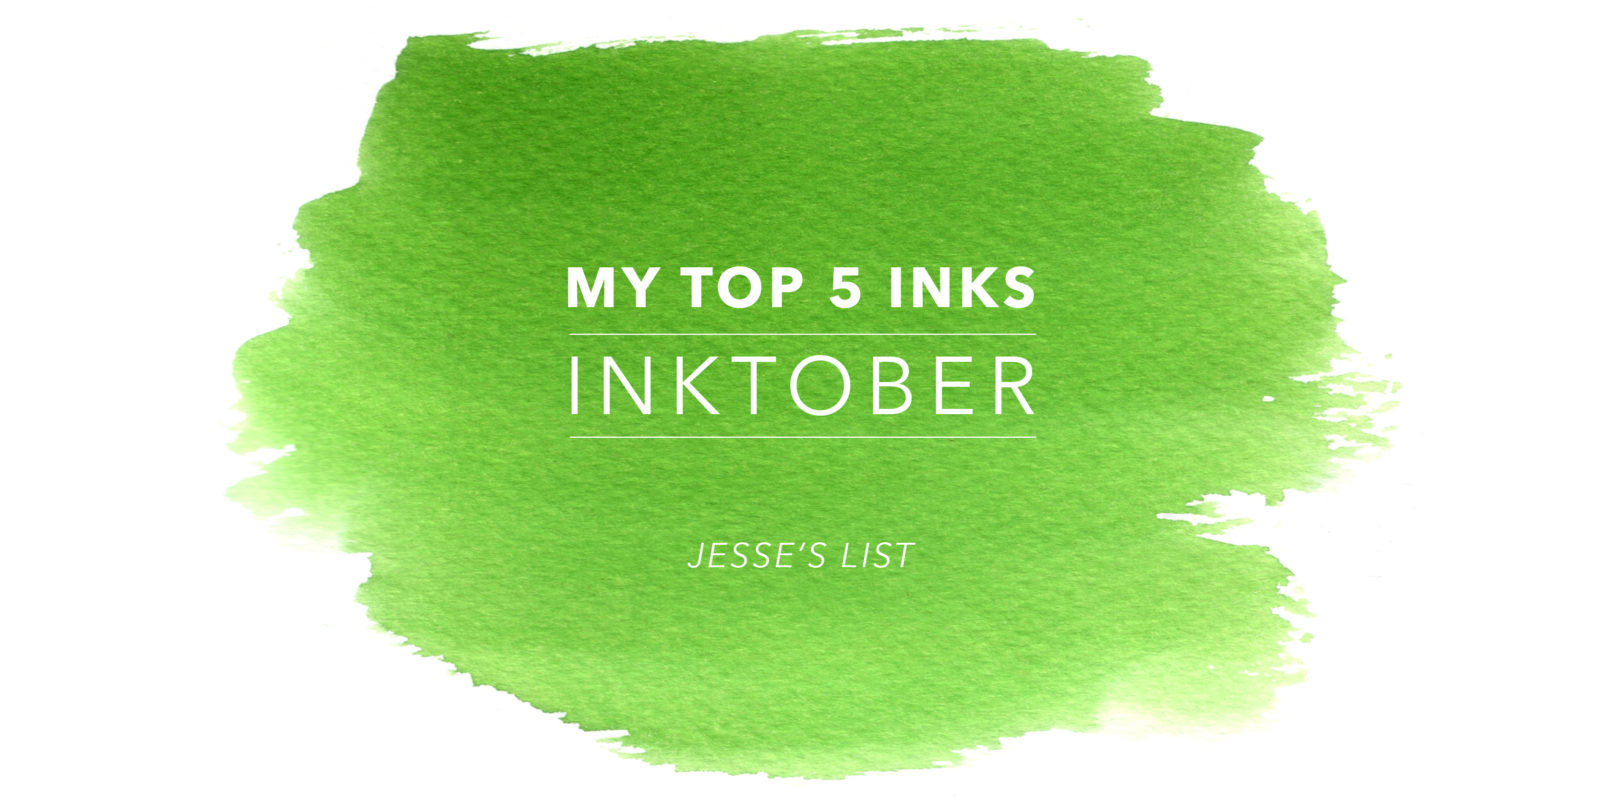 Inktober 2017 Top 5 List